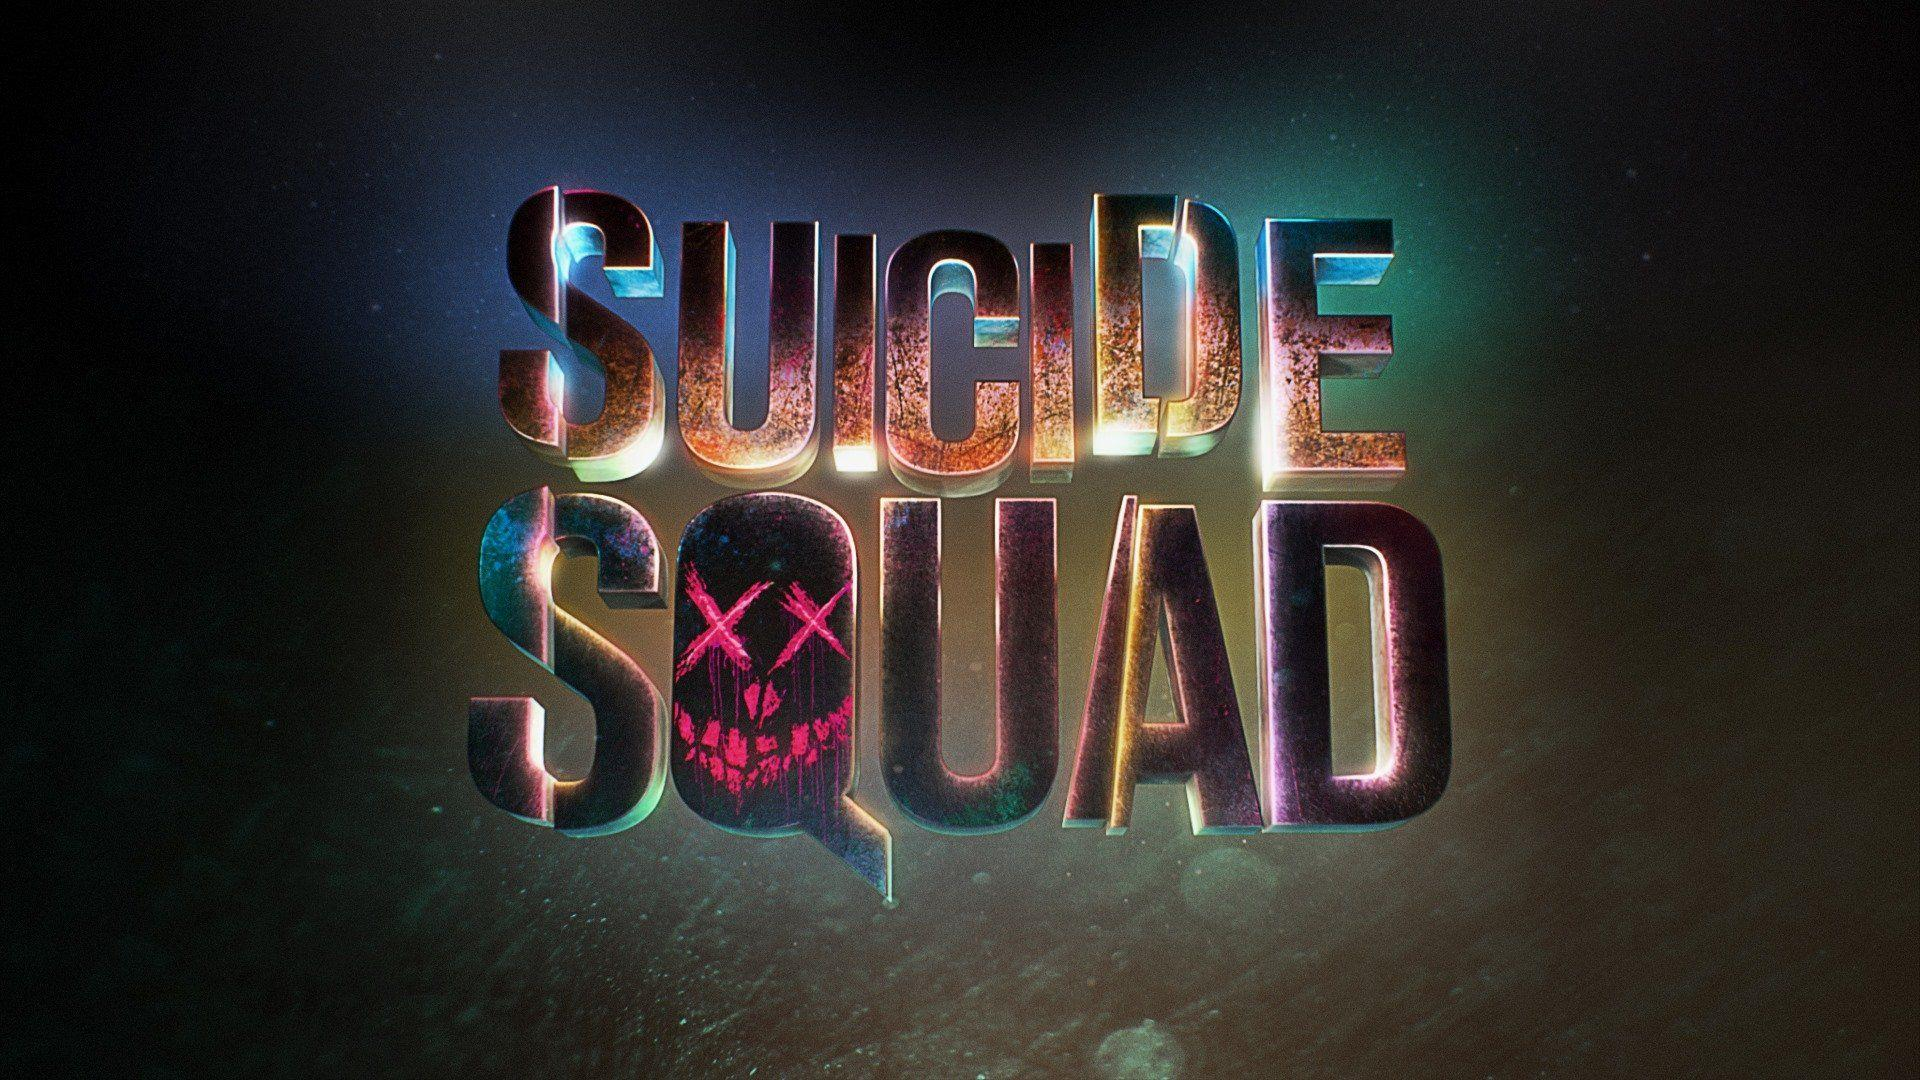 130 Suicide Squad HD Wallpapers